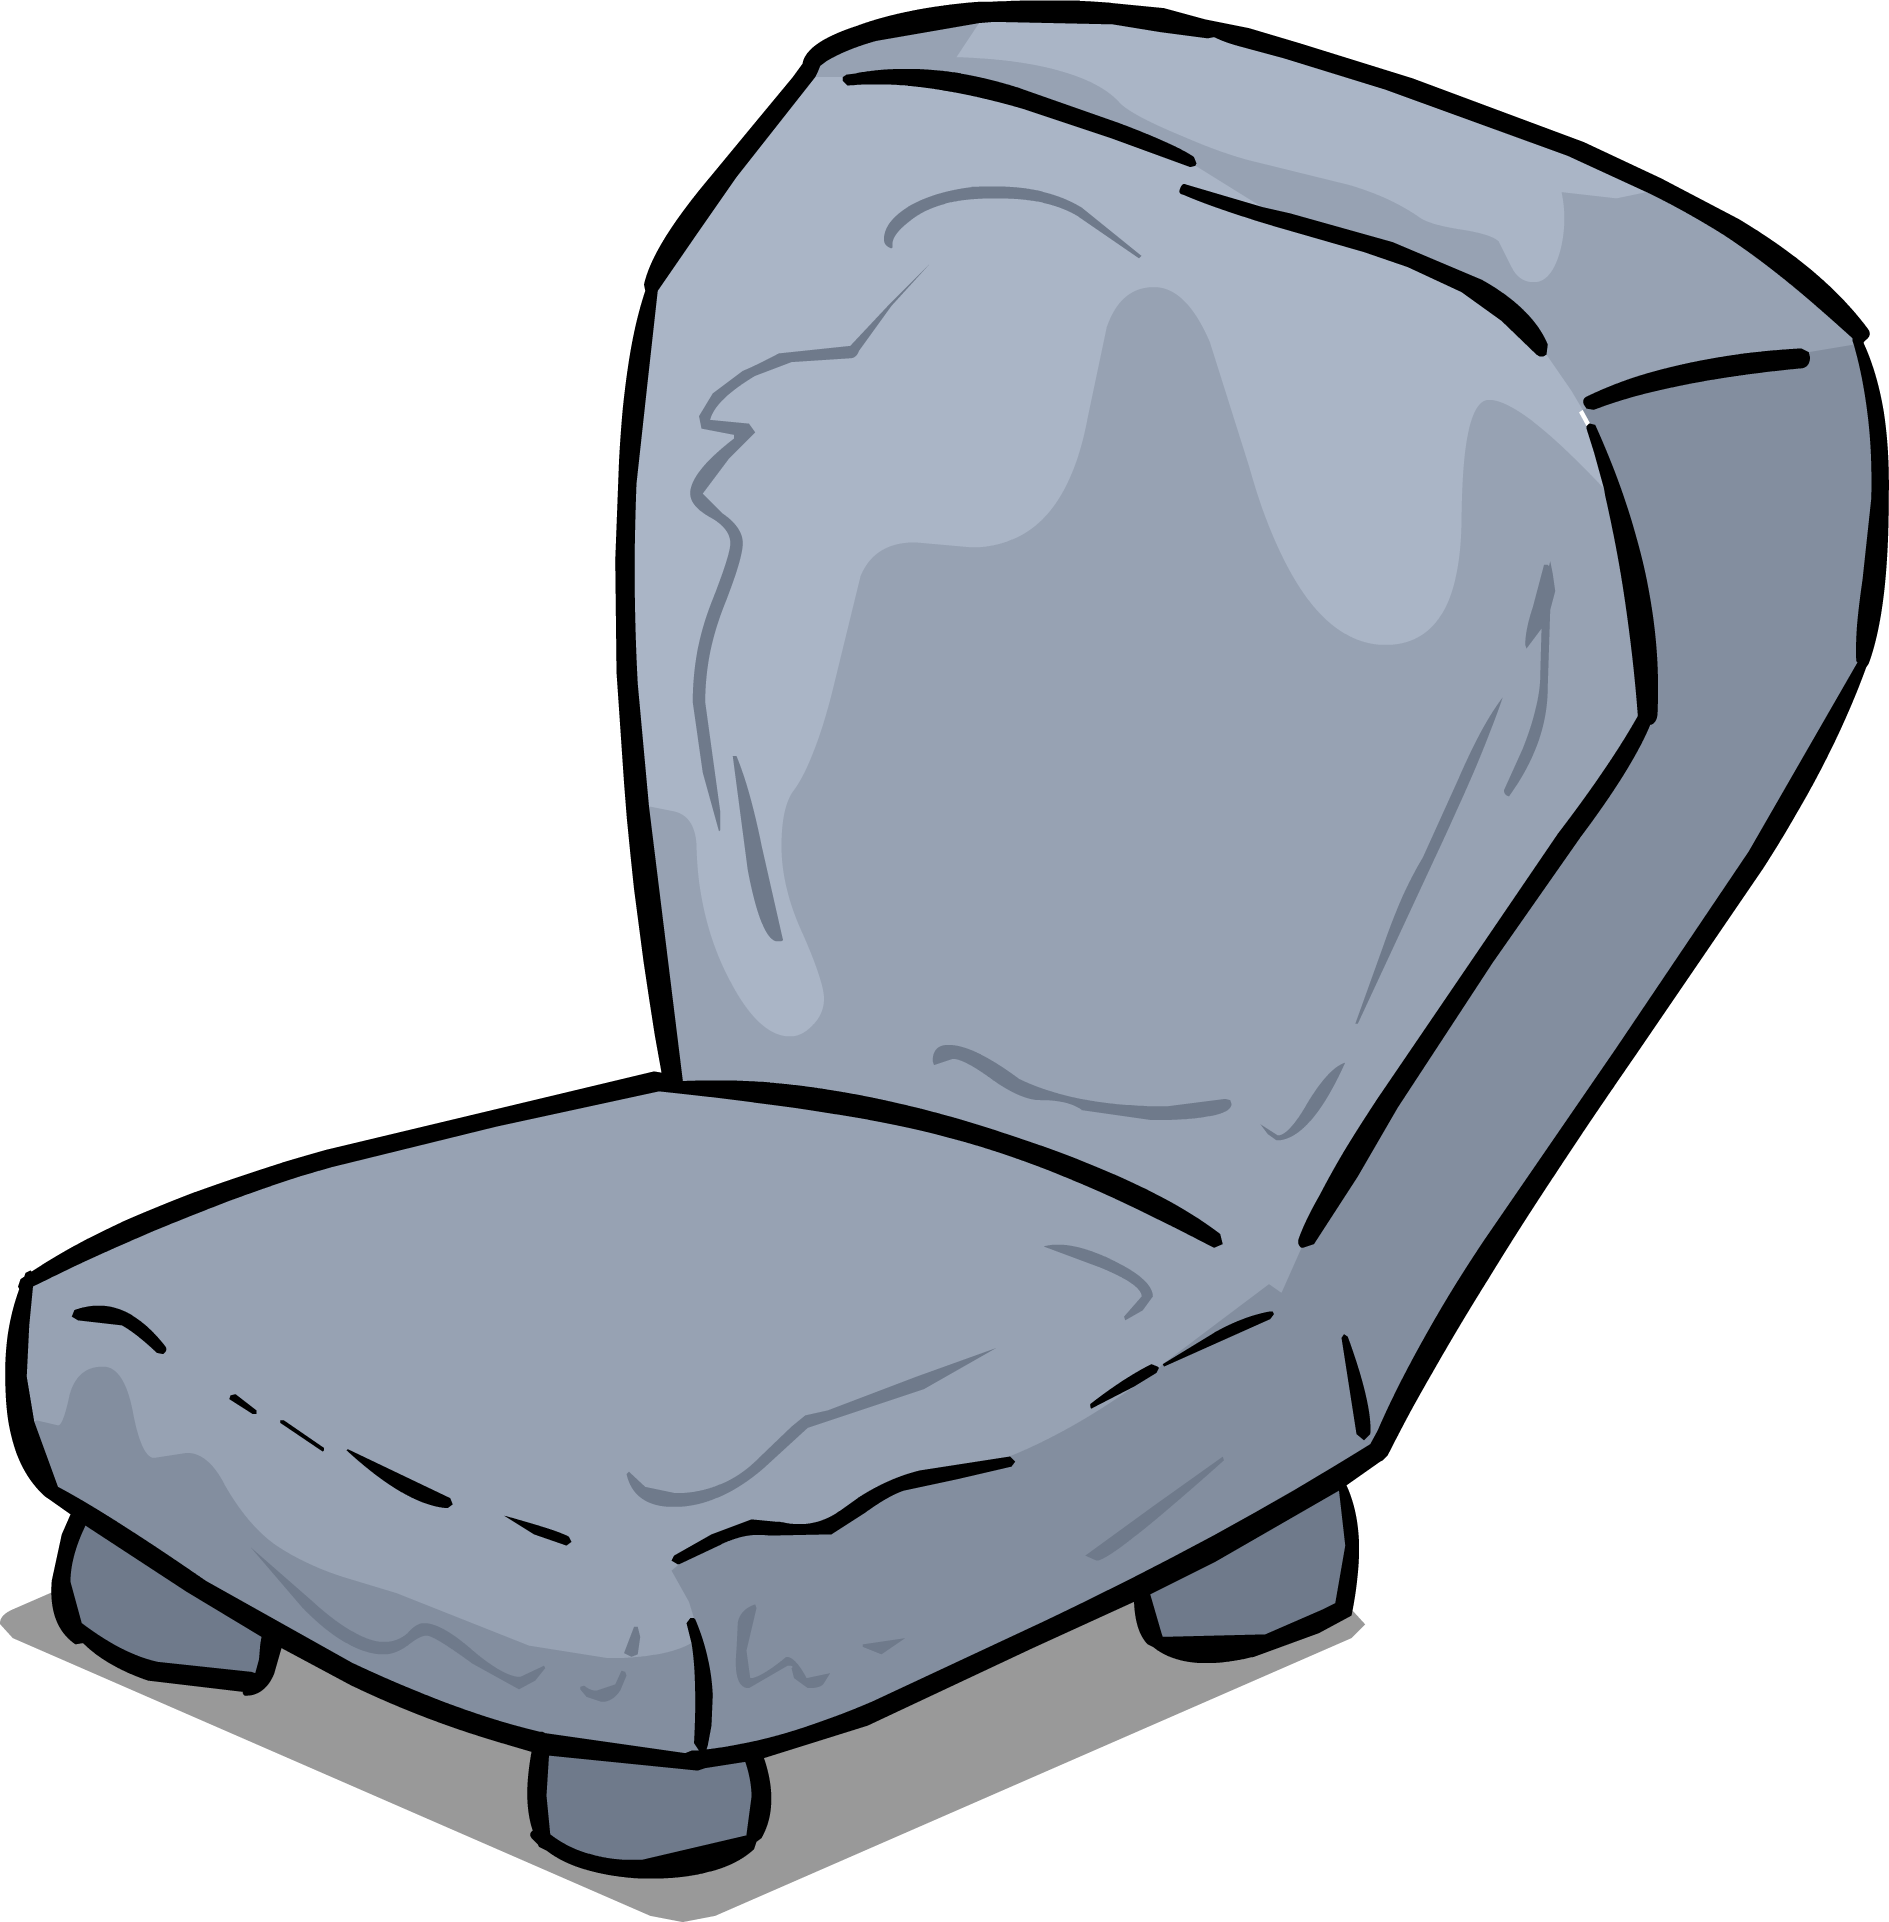 Movies clipart seat. Image stone chair sprite